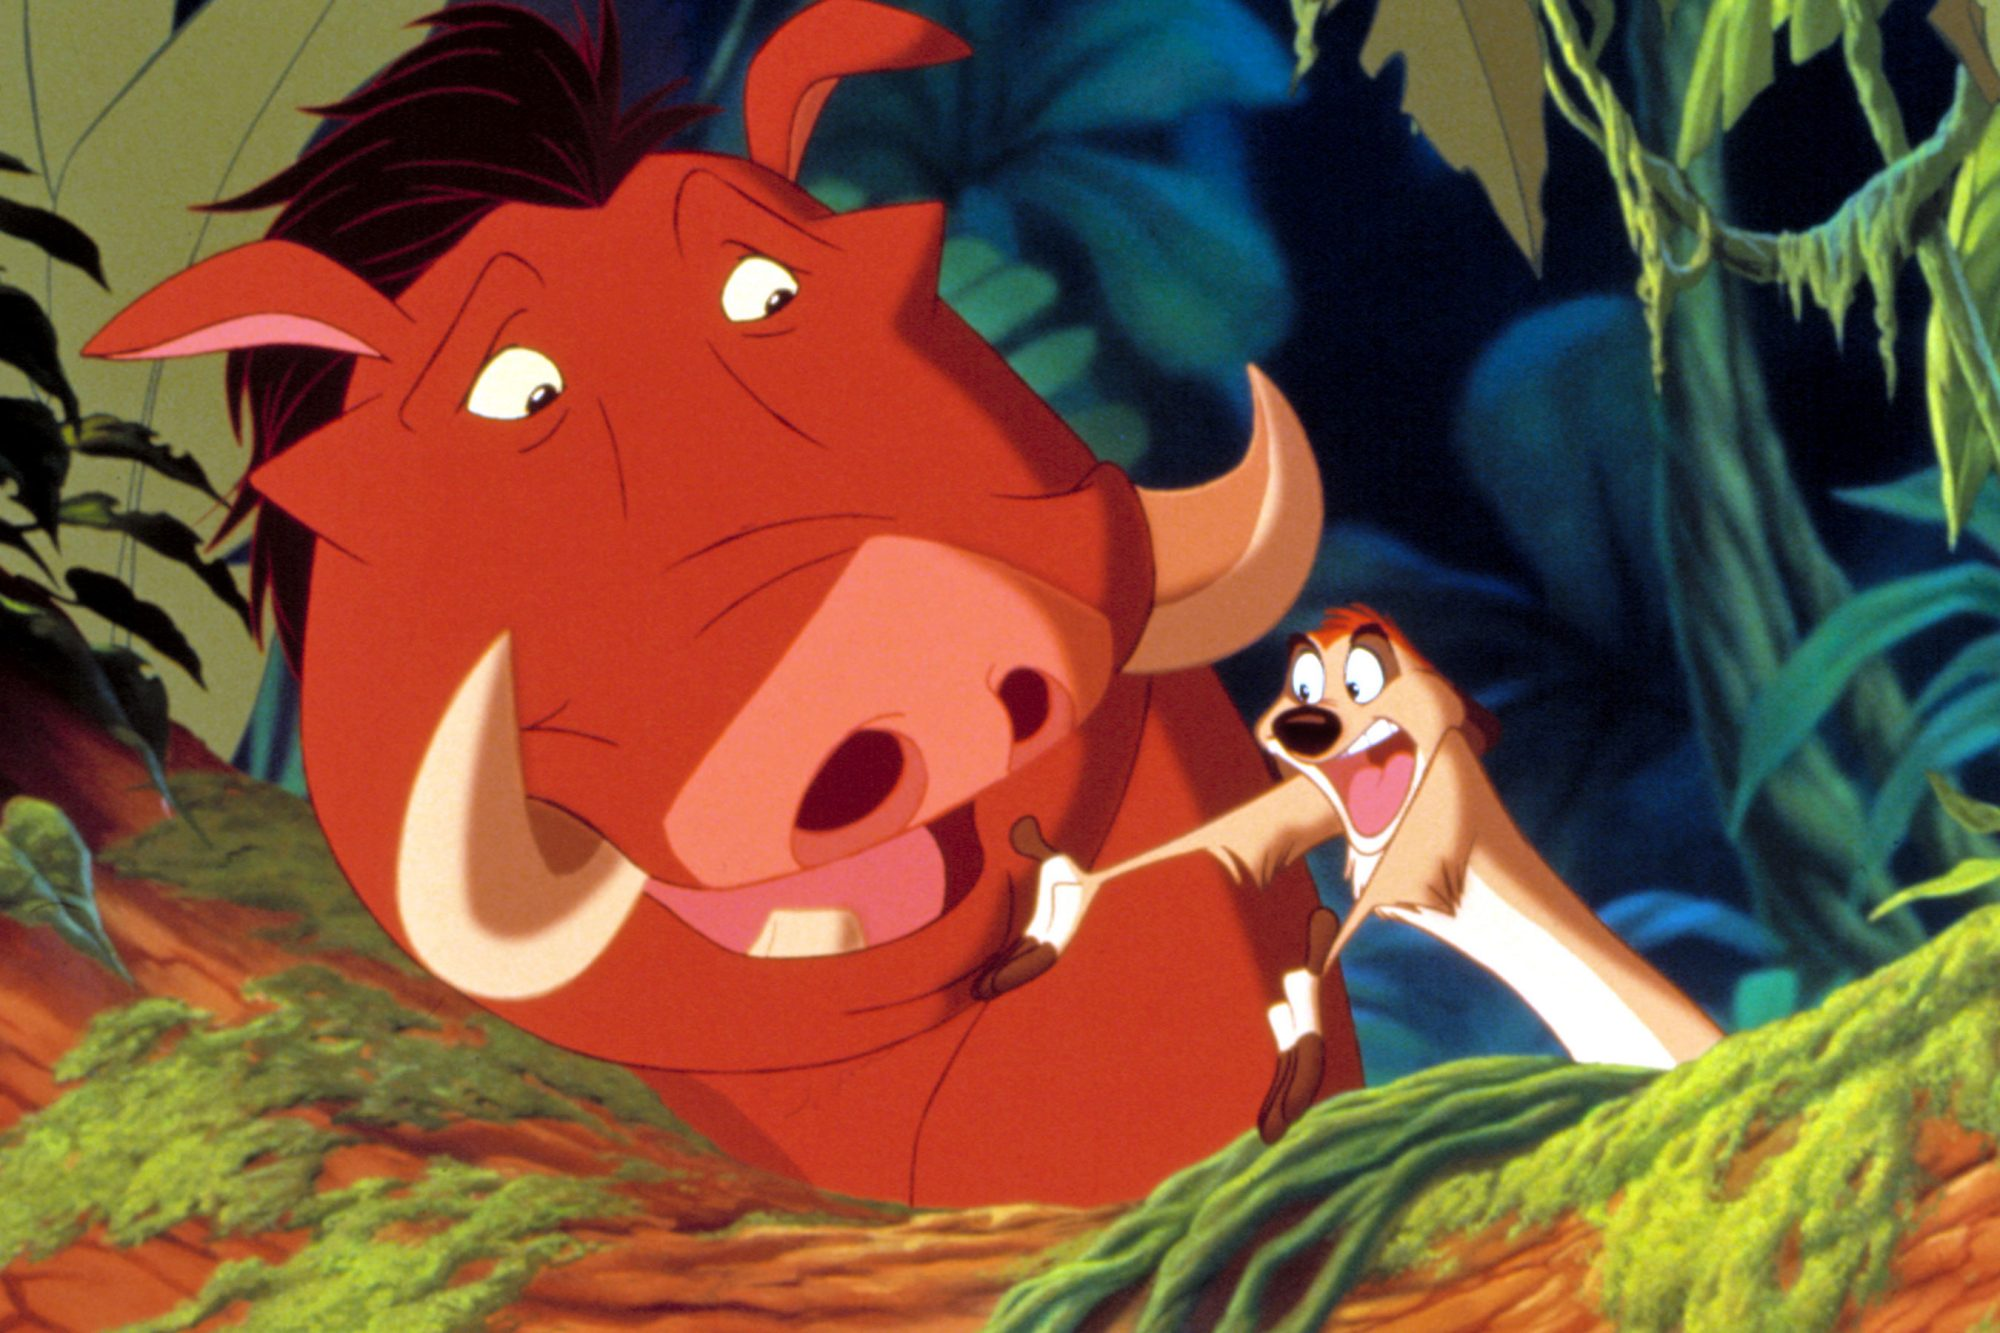 THE LION KING, Pumbaa, Timon, 1994. ©Buena Vista Pictures/Courtesy Everett Collection